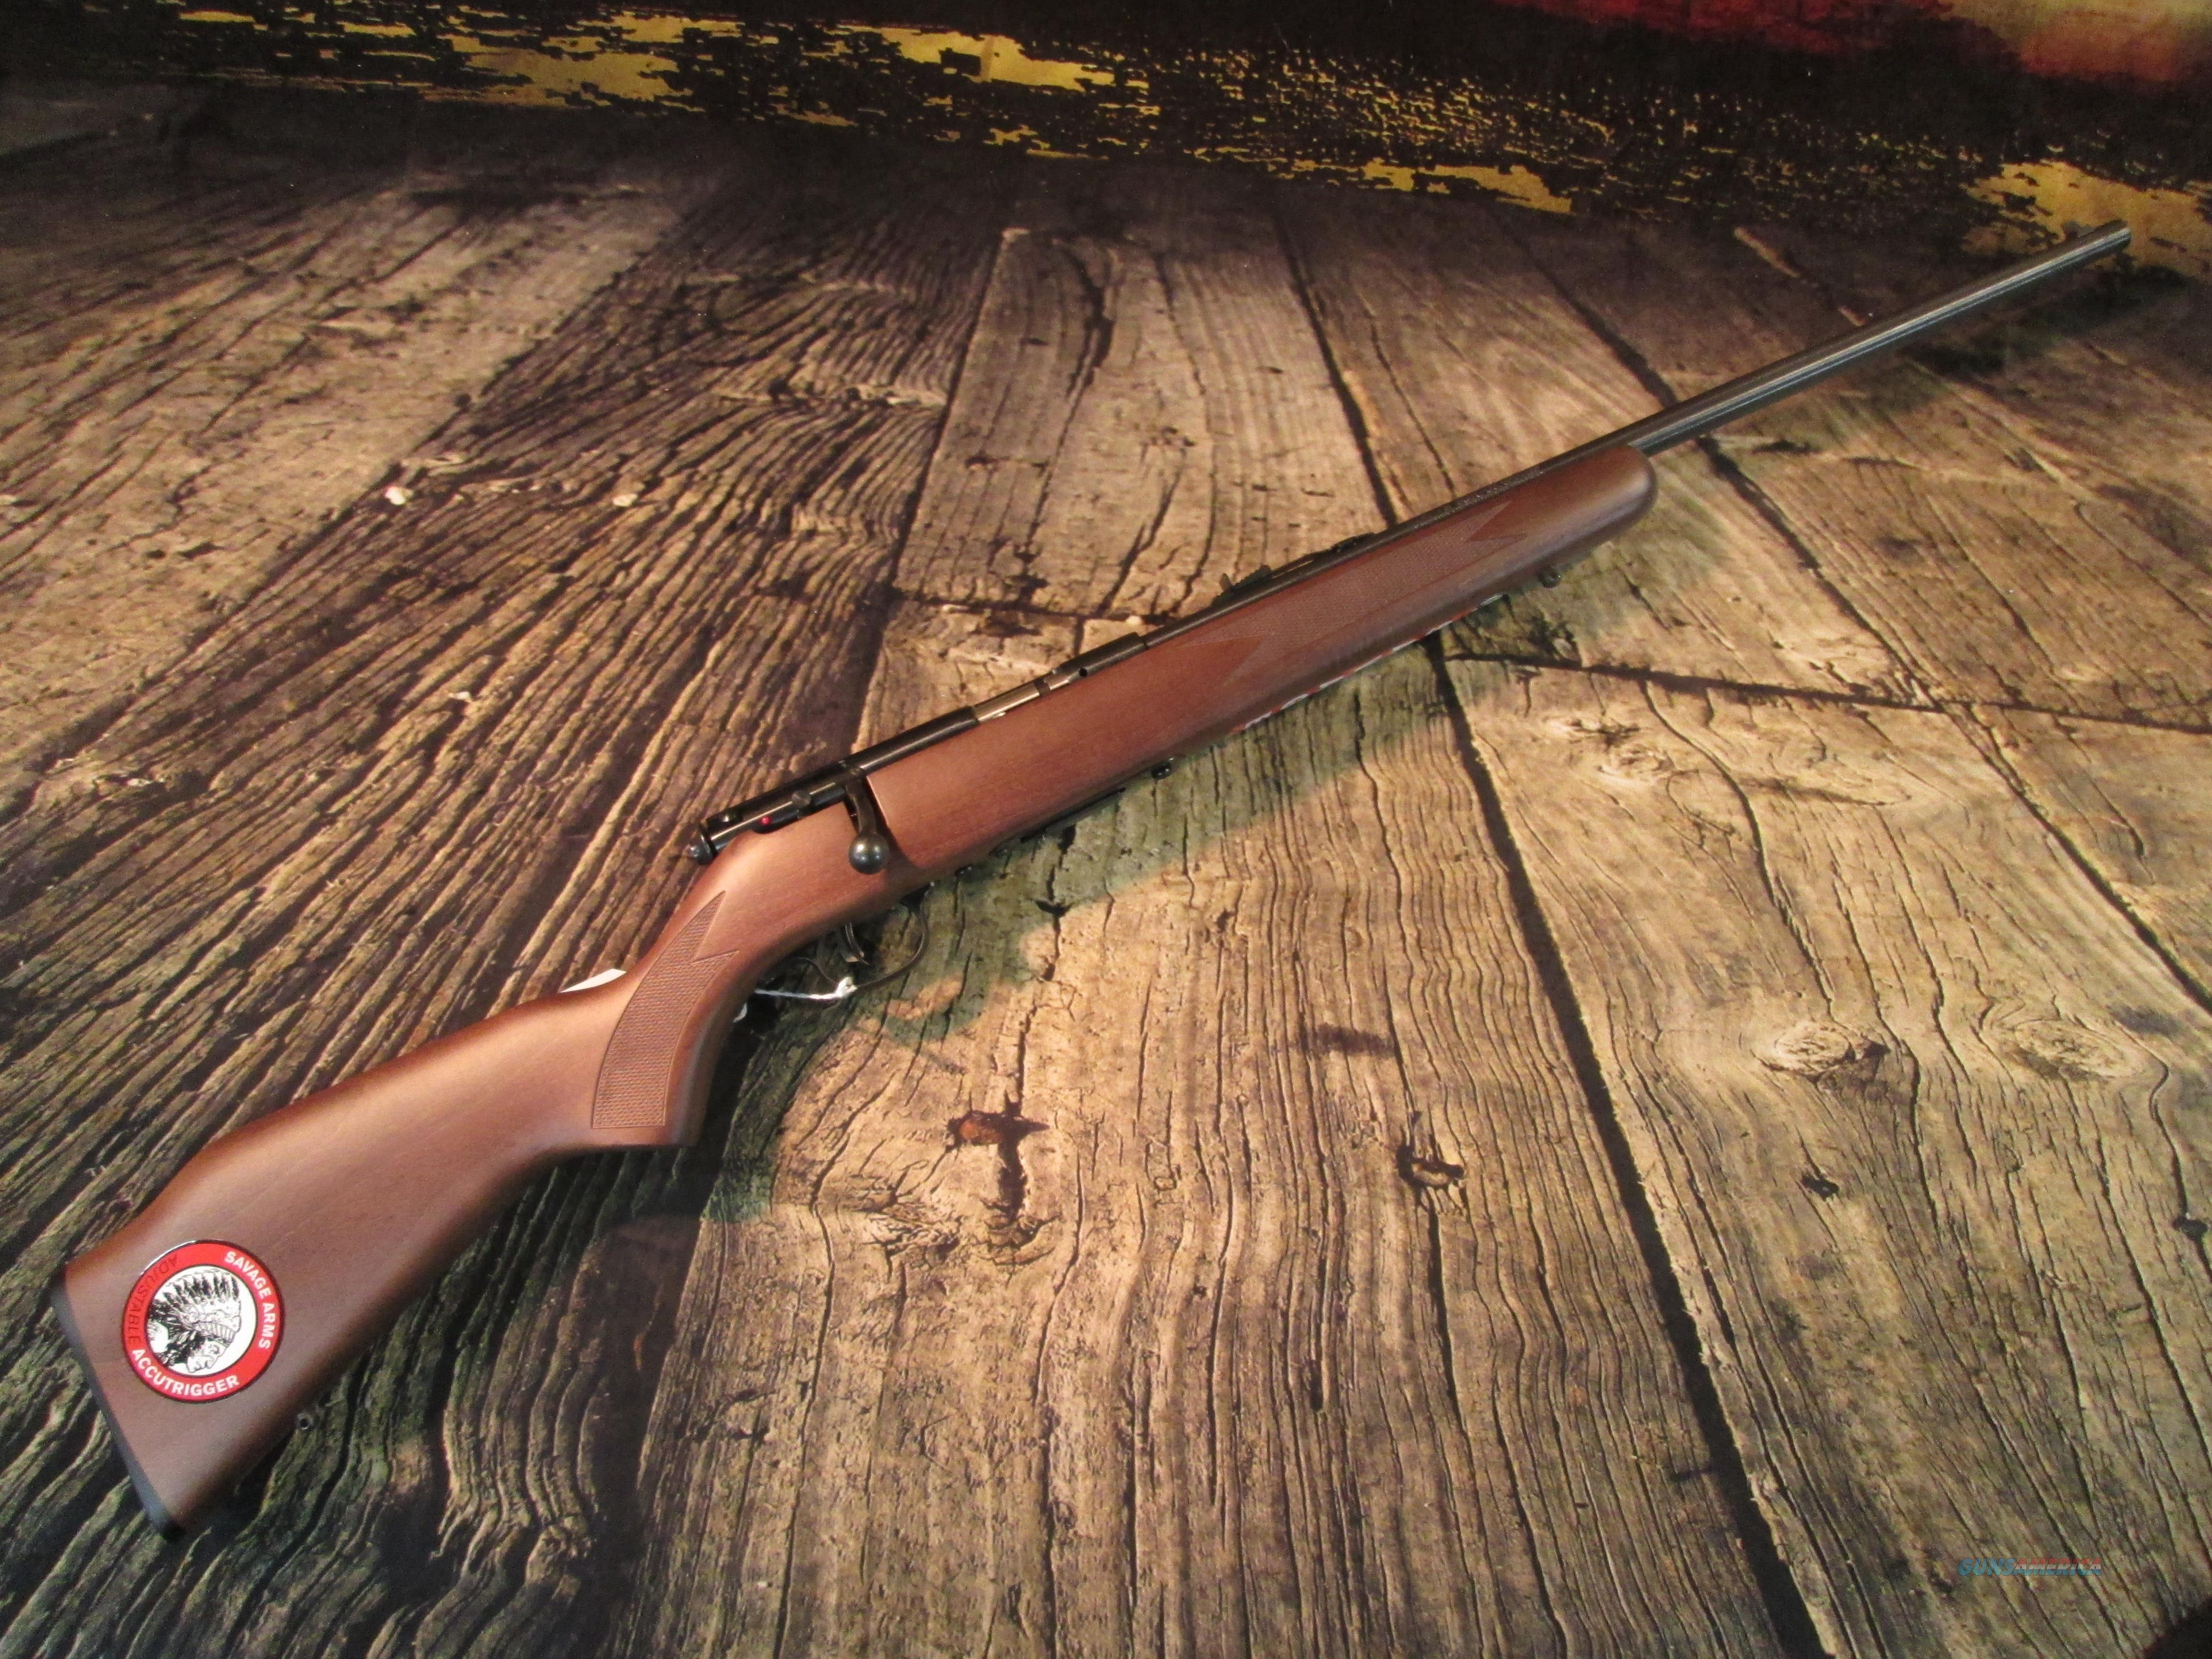 The exchange available now savage 93g w accutrigger and wooden stock 22 mag new 90700 sciox Images